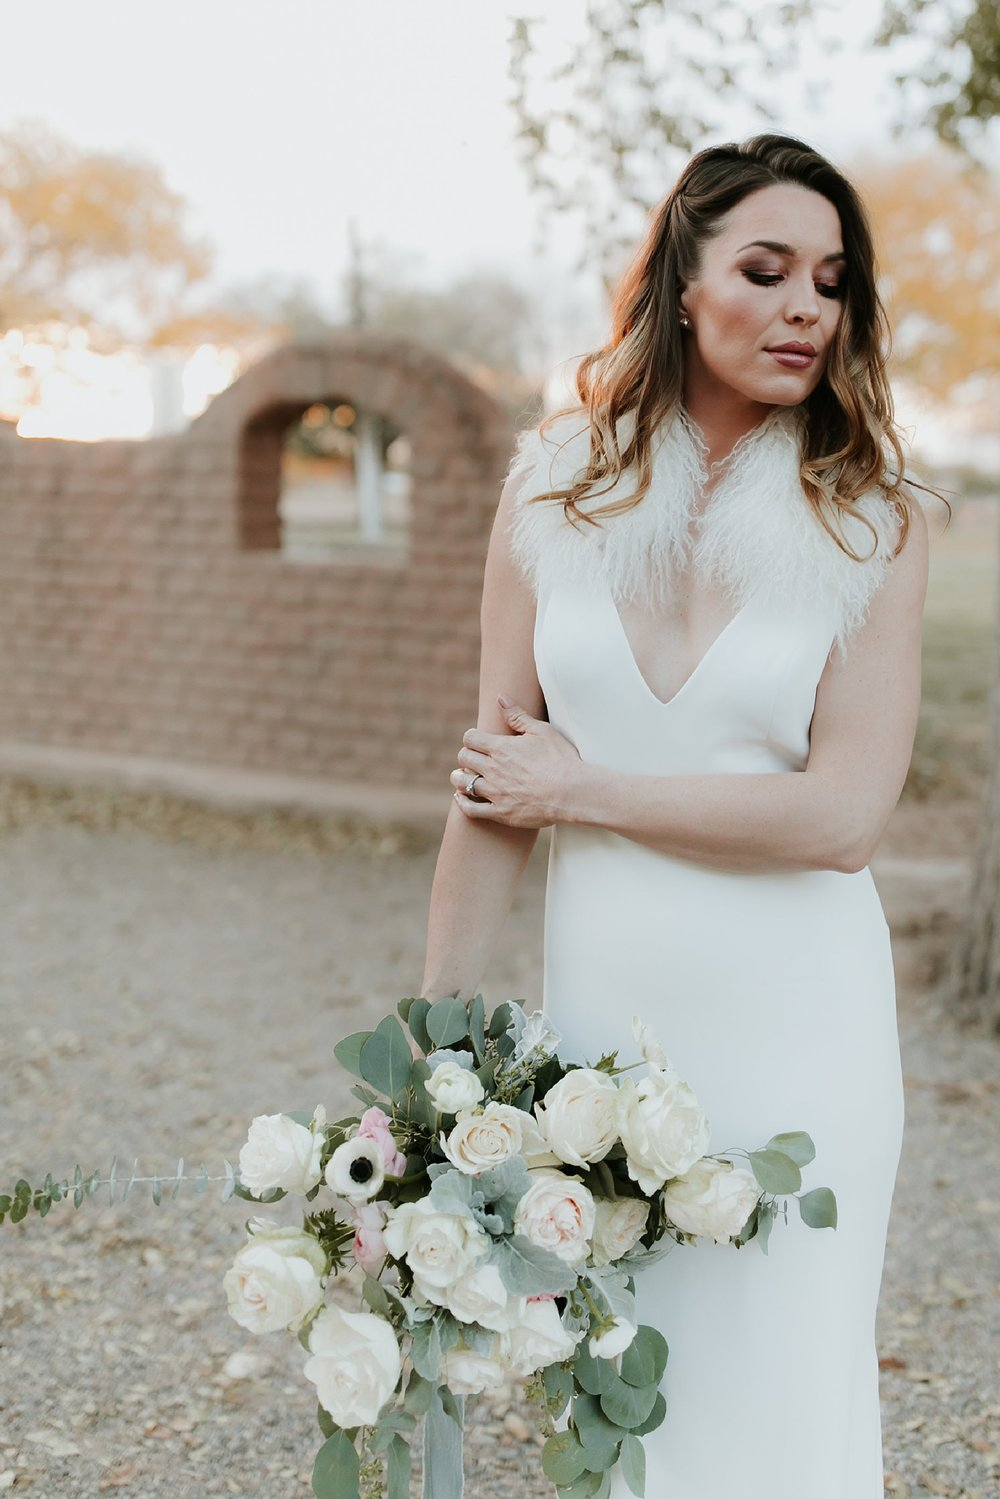 Alicia+lucia+photography+-+albuquerque+wedding+photographer+-+santa+fe+wedding+photography+-+new+mexico+wedding+photographer+-+bridal+shoot+-+styled+bridal+shoot+-+southwest+bride_0008.jpg